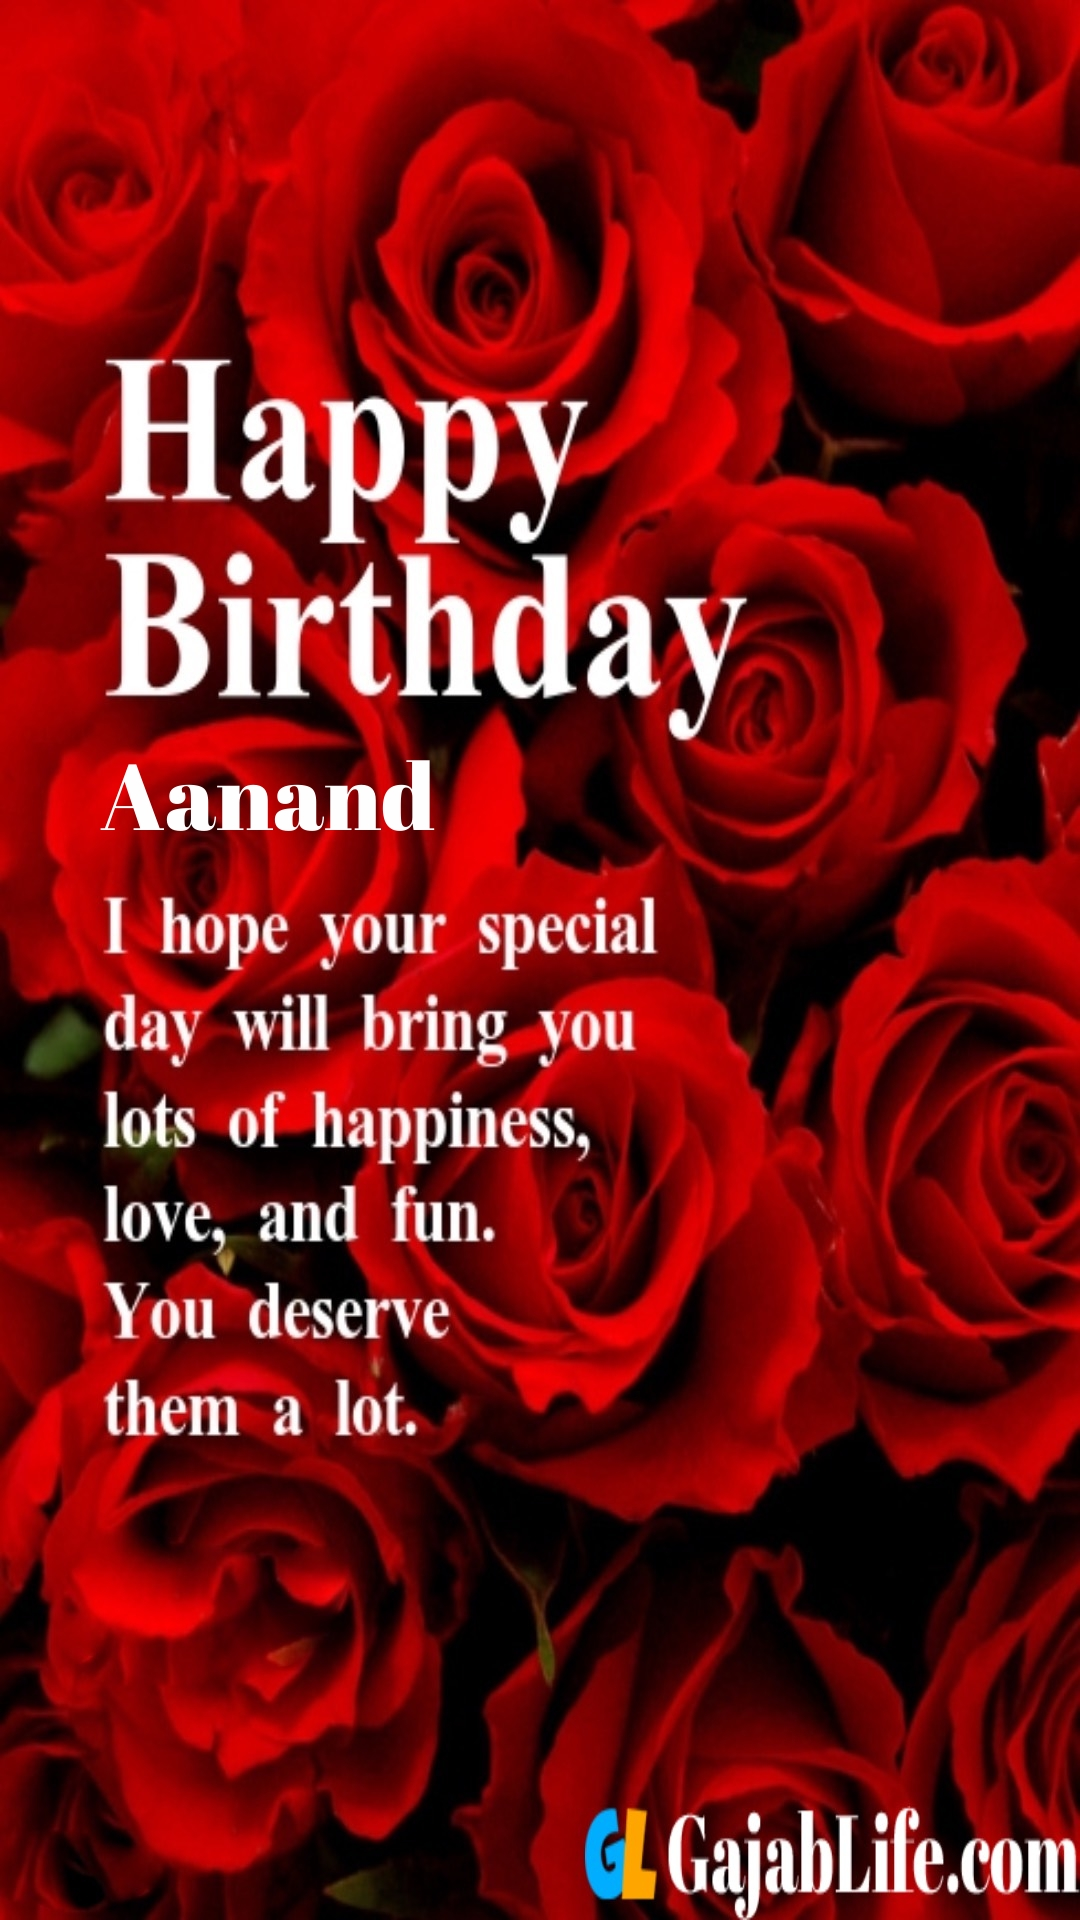 Aanand birthday greeting card with rose & love